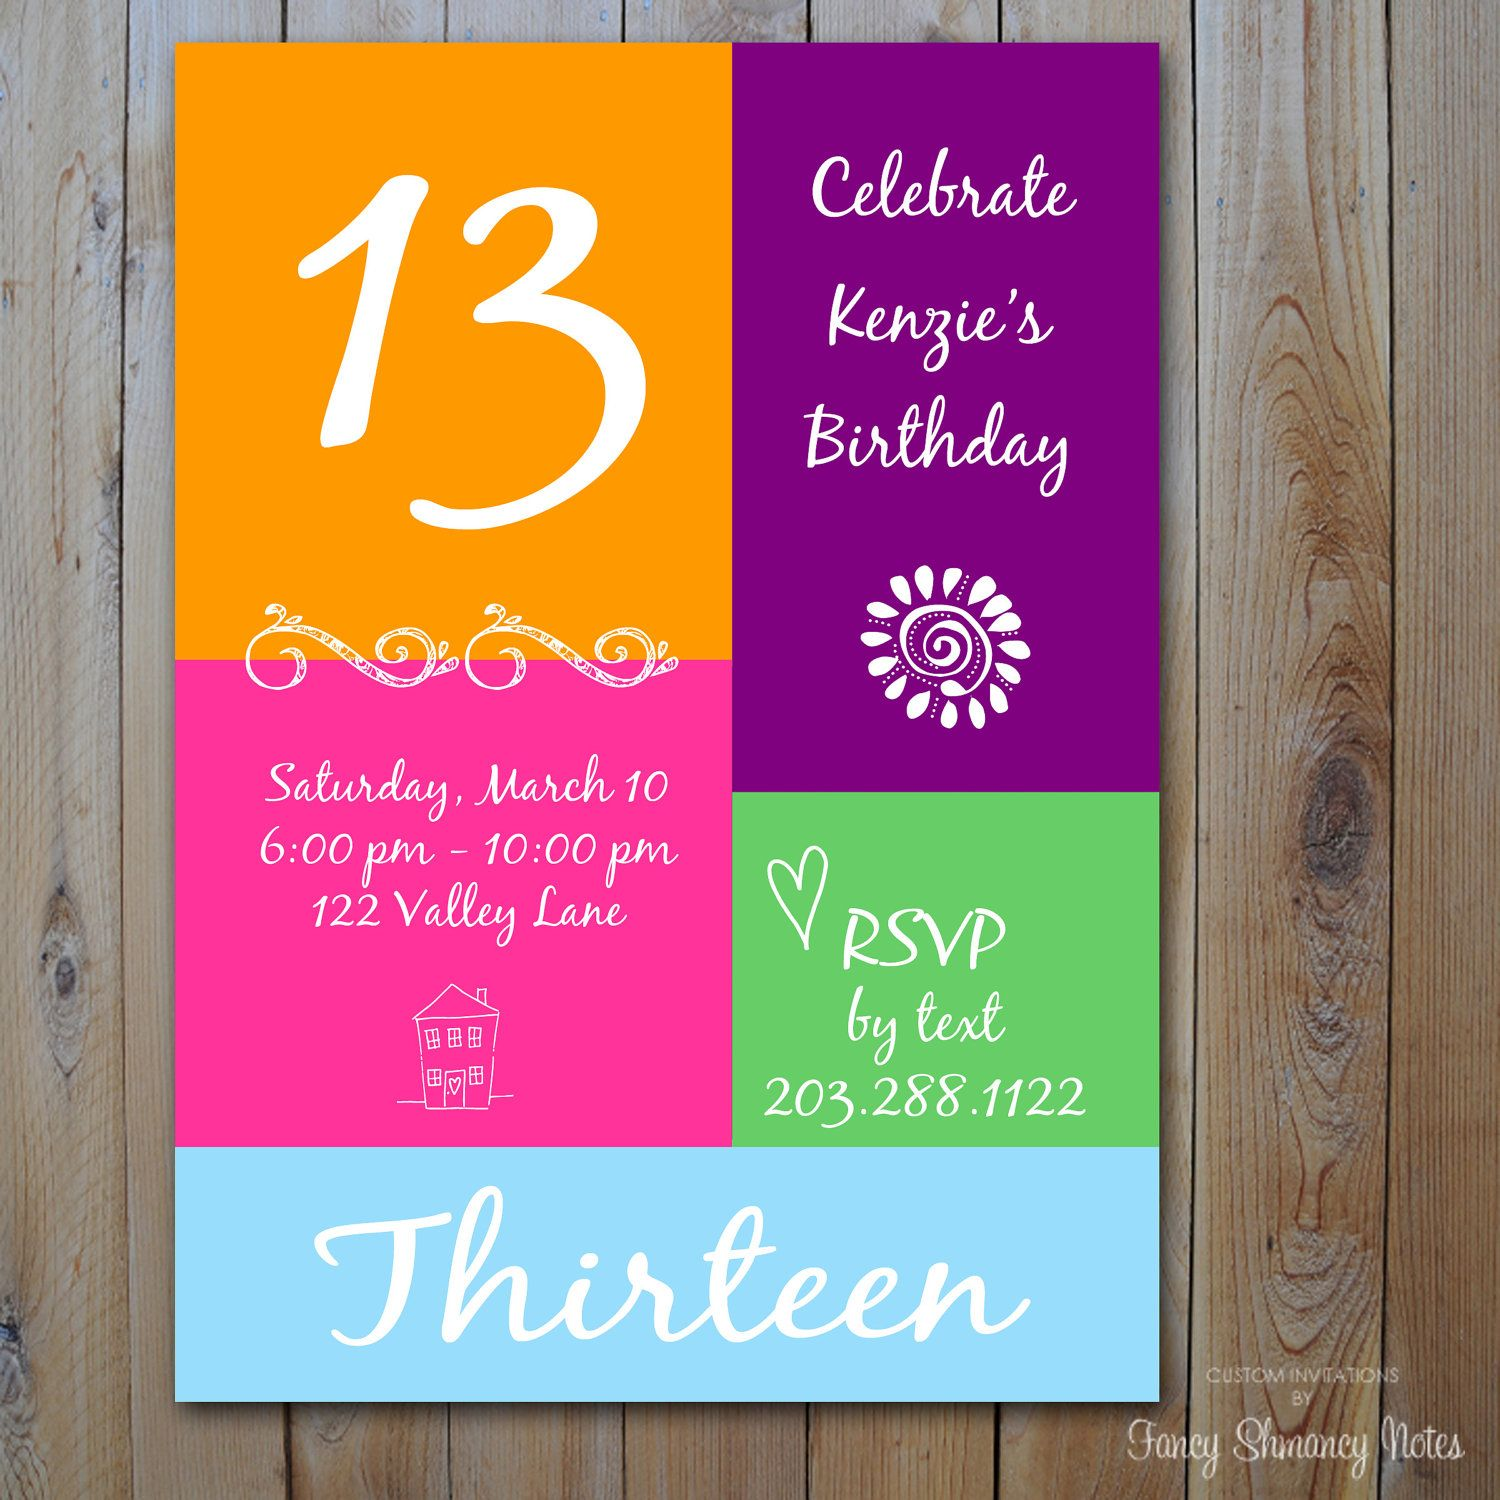 th Birthday Invitation Girls Birthday by fancyshmancynotes